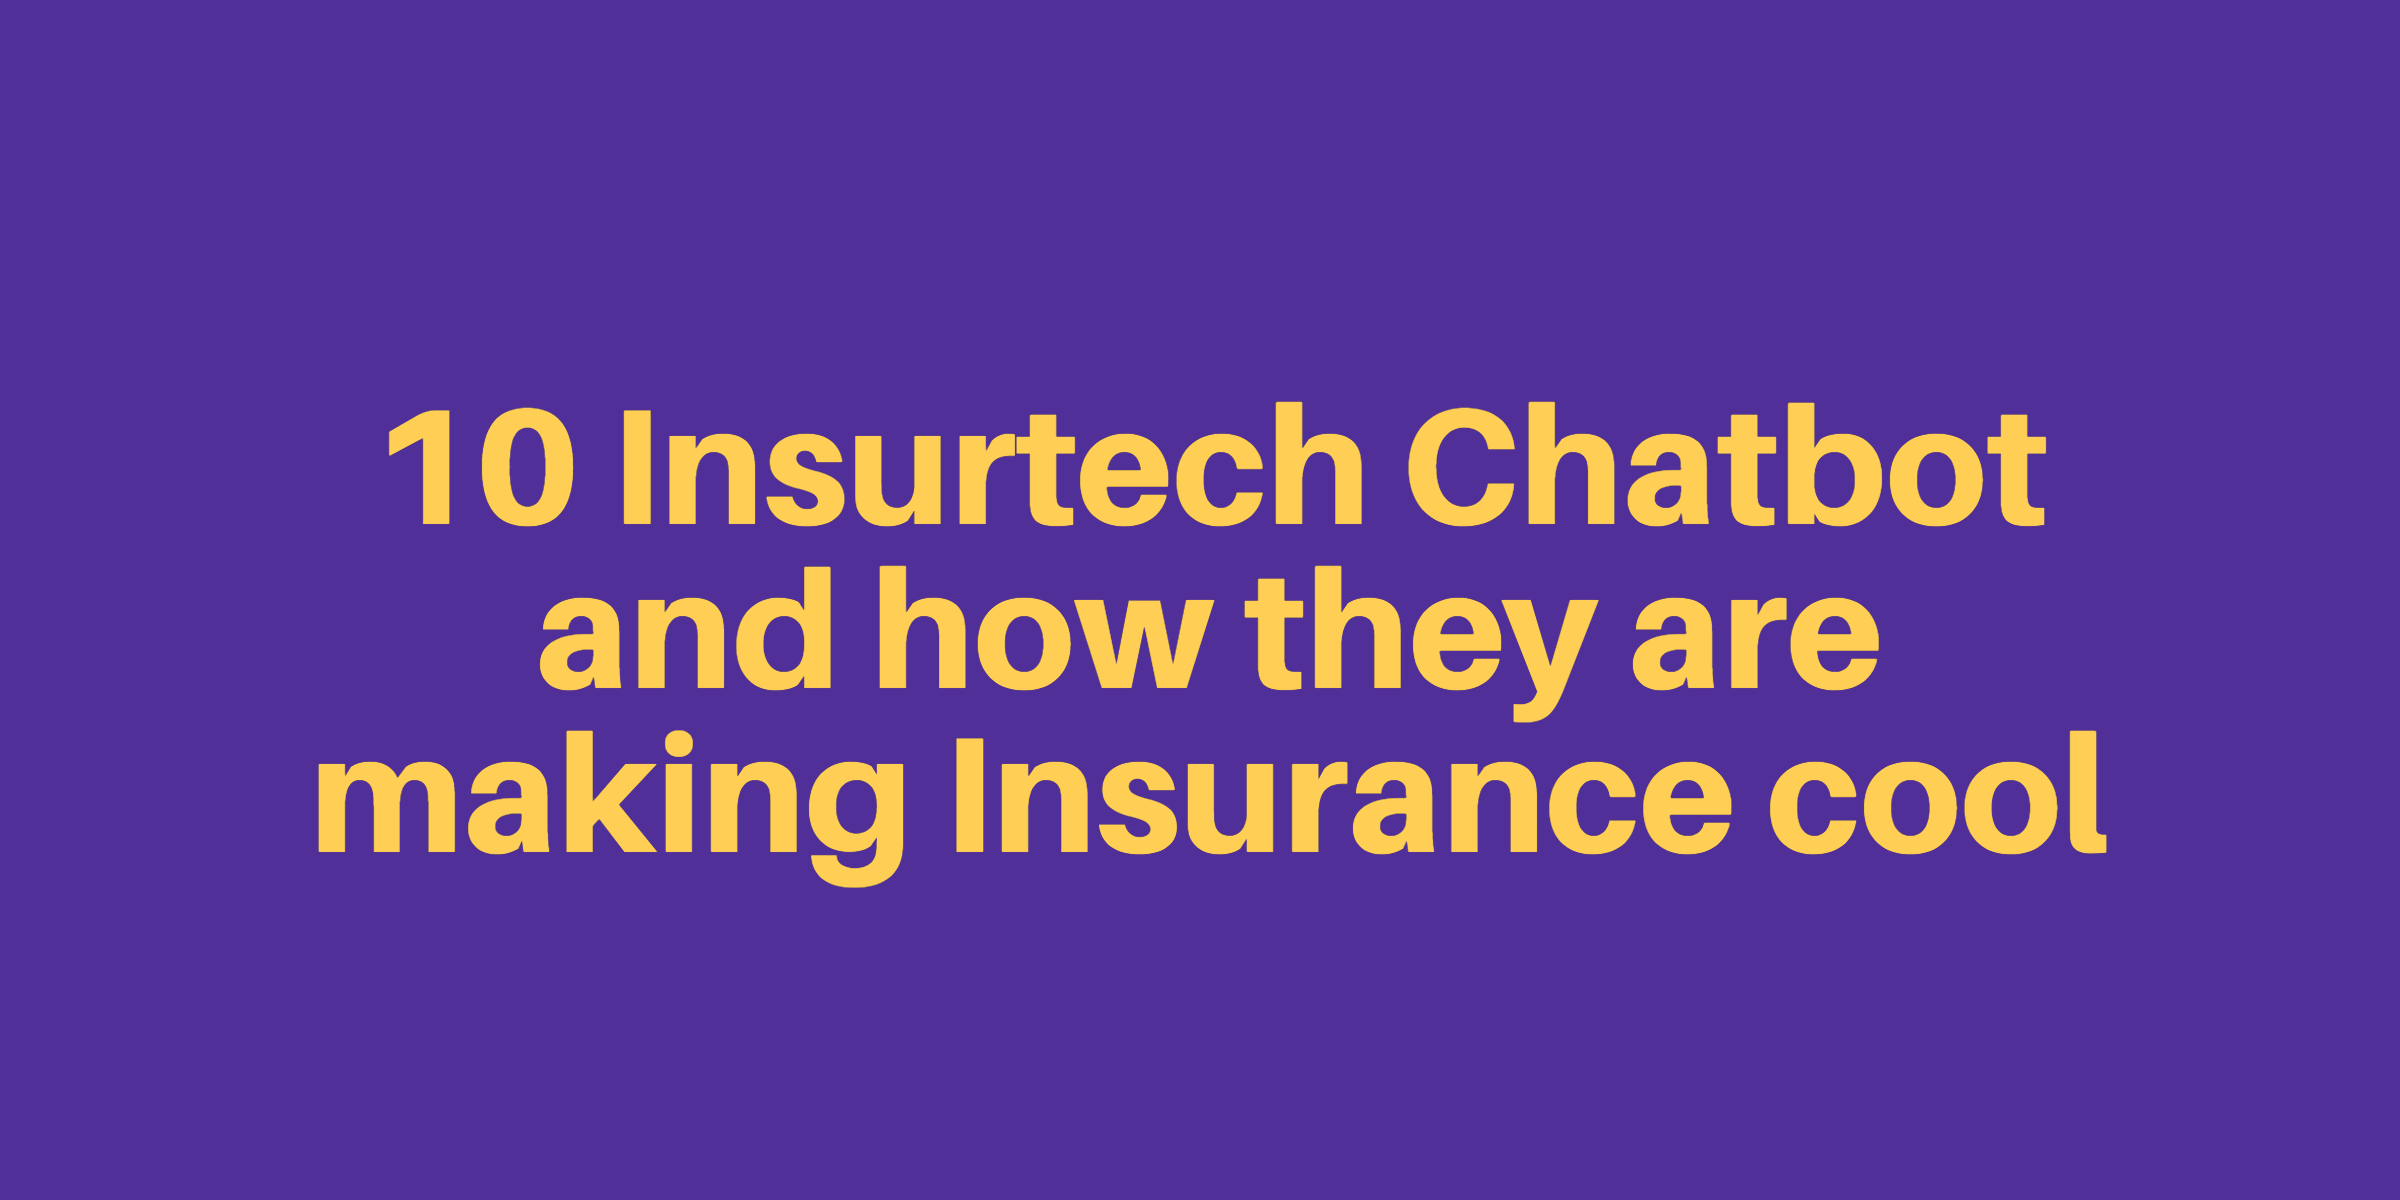 10 Insurtech Chatbot and how they are making Insurance cool